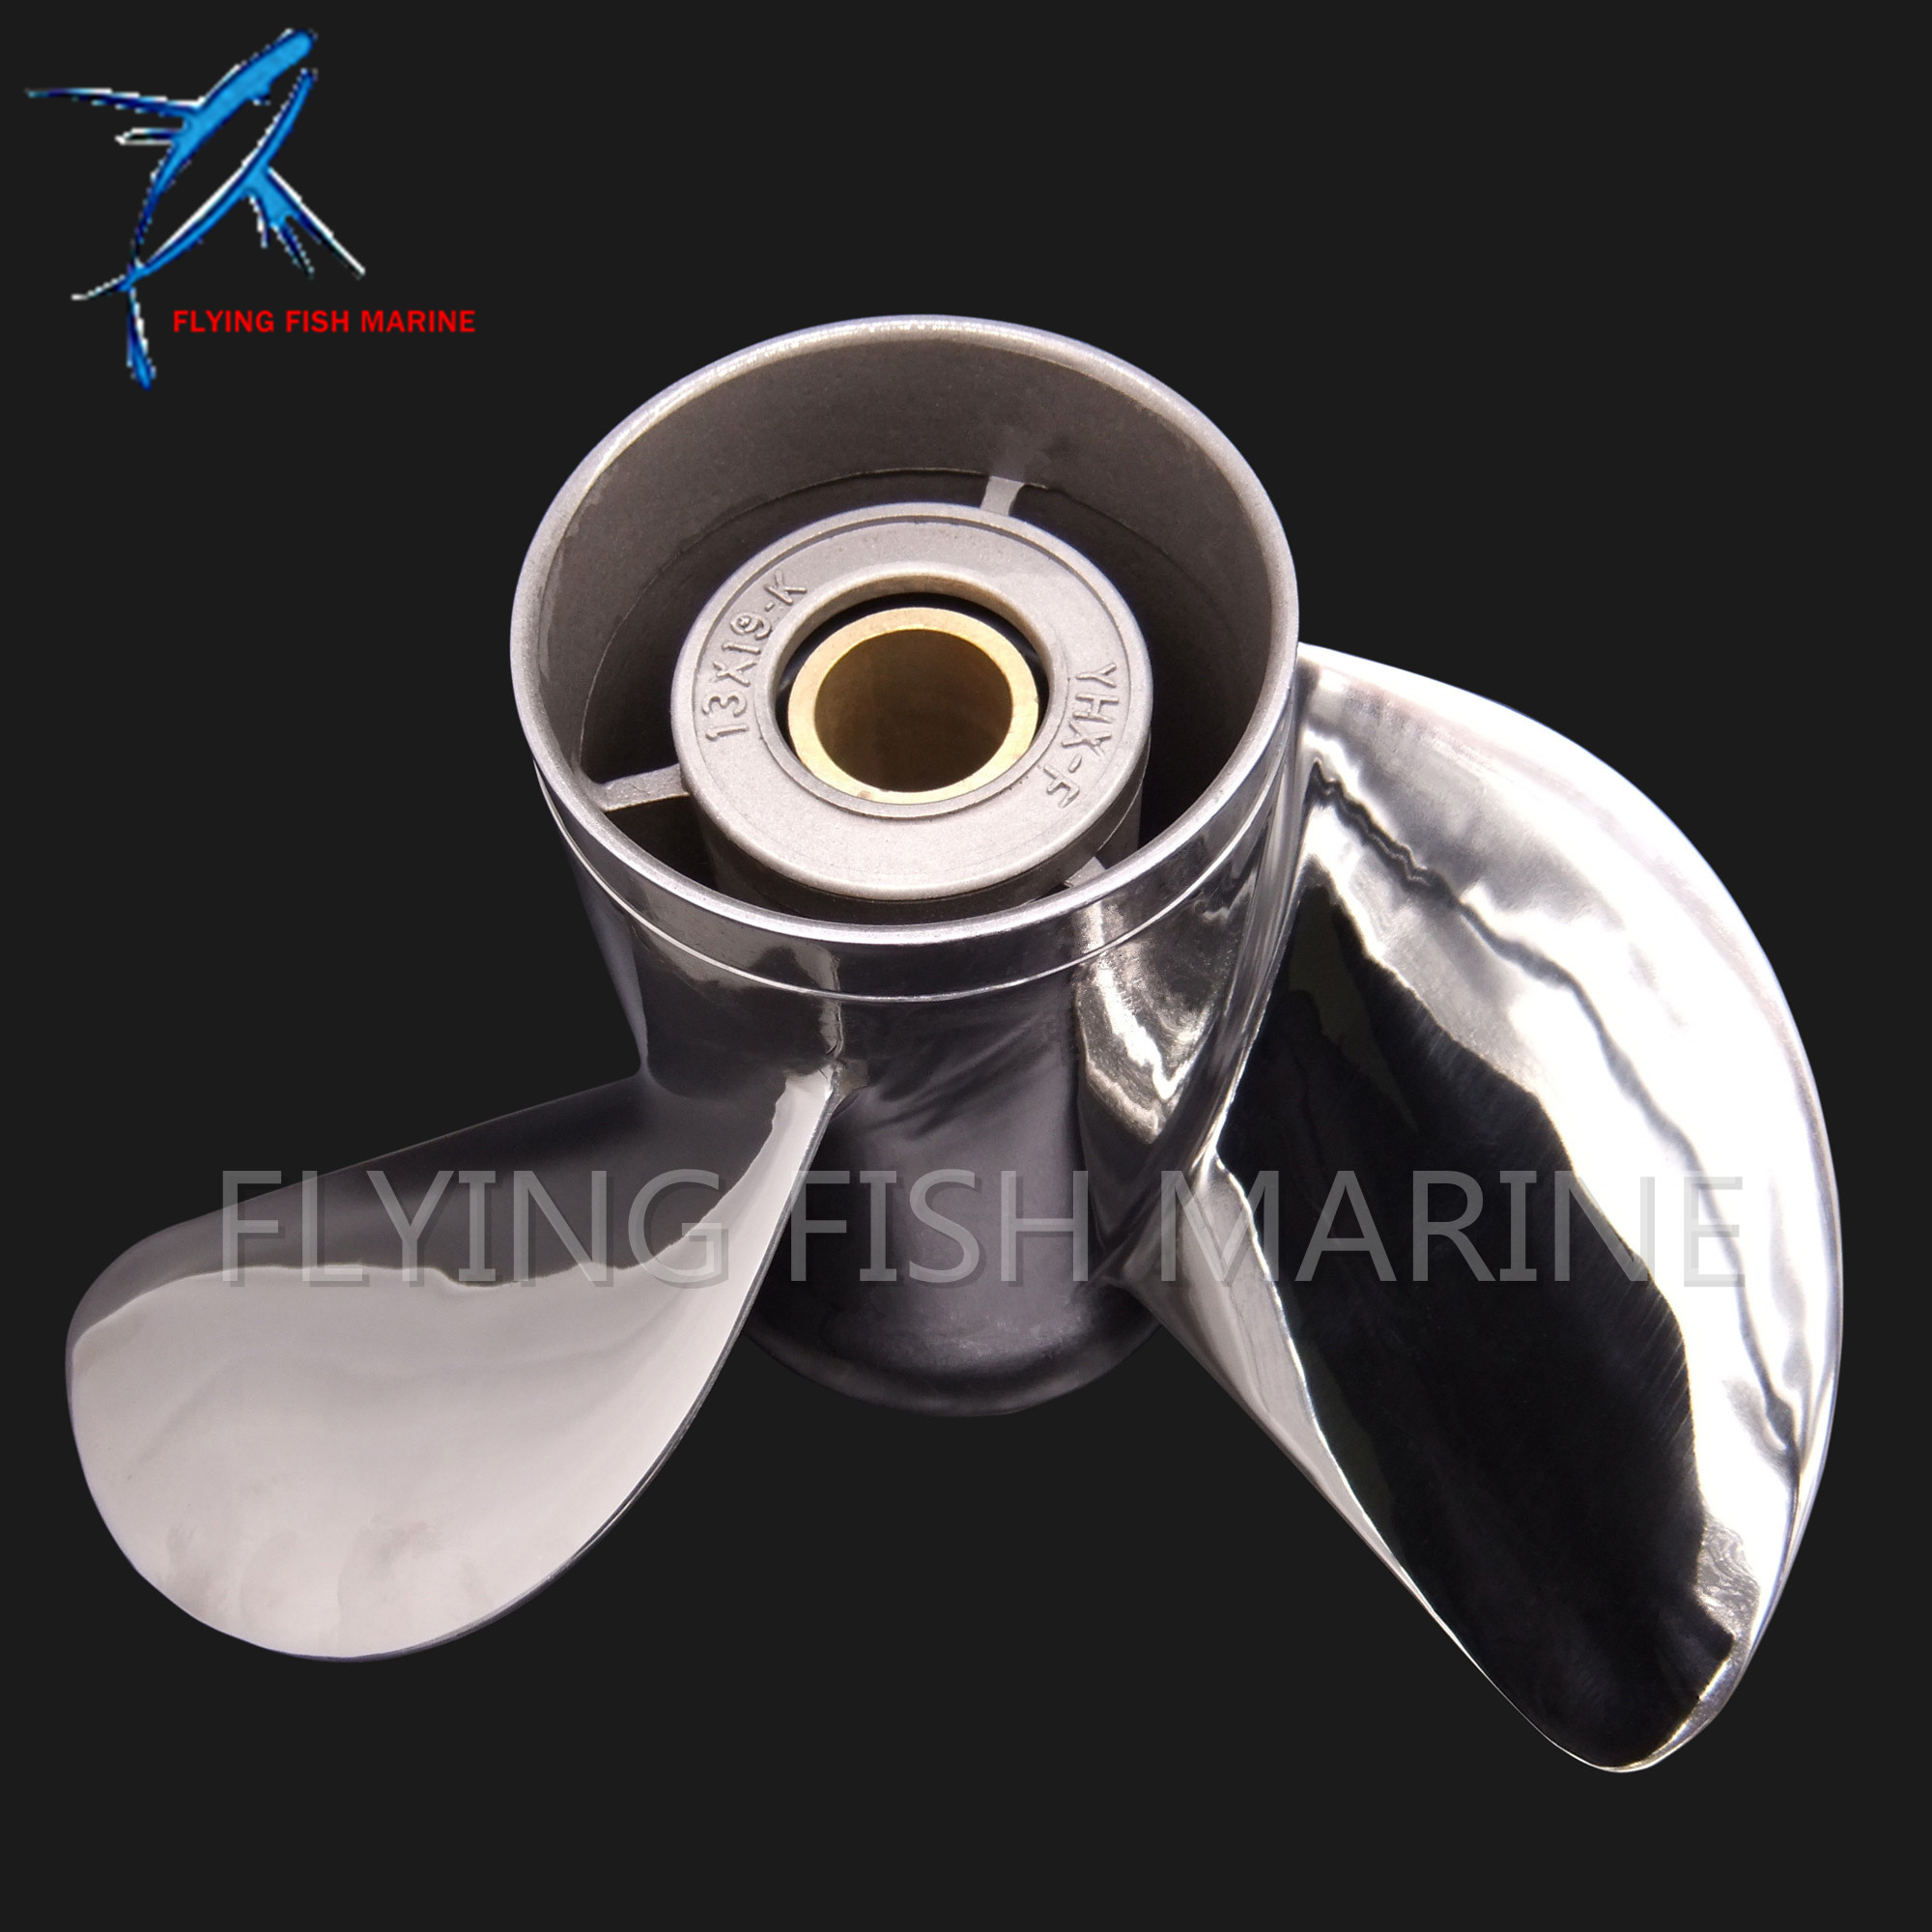 Outboard 688-45970-03-98 Boat Motor Stainless Steel Propeller 13x19-K for Yamaha 60HP 70HP 75HP 80HP 85HP 90HP 115HP 130HP